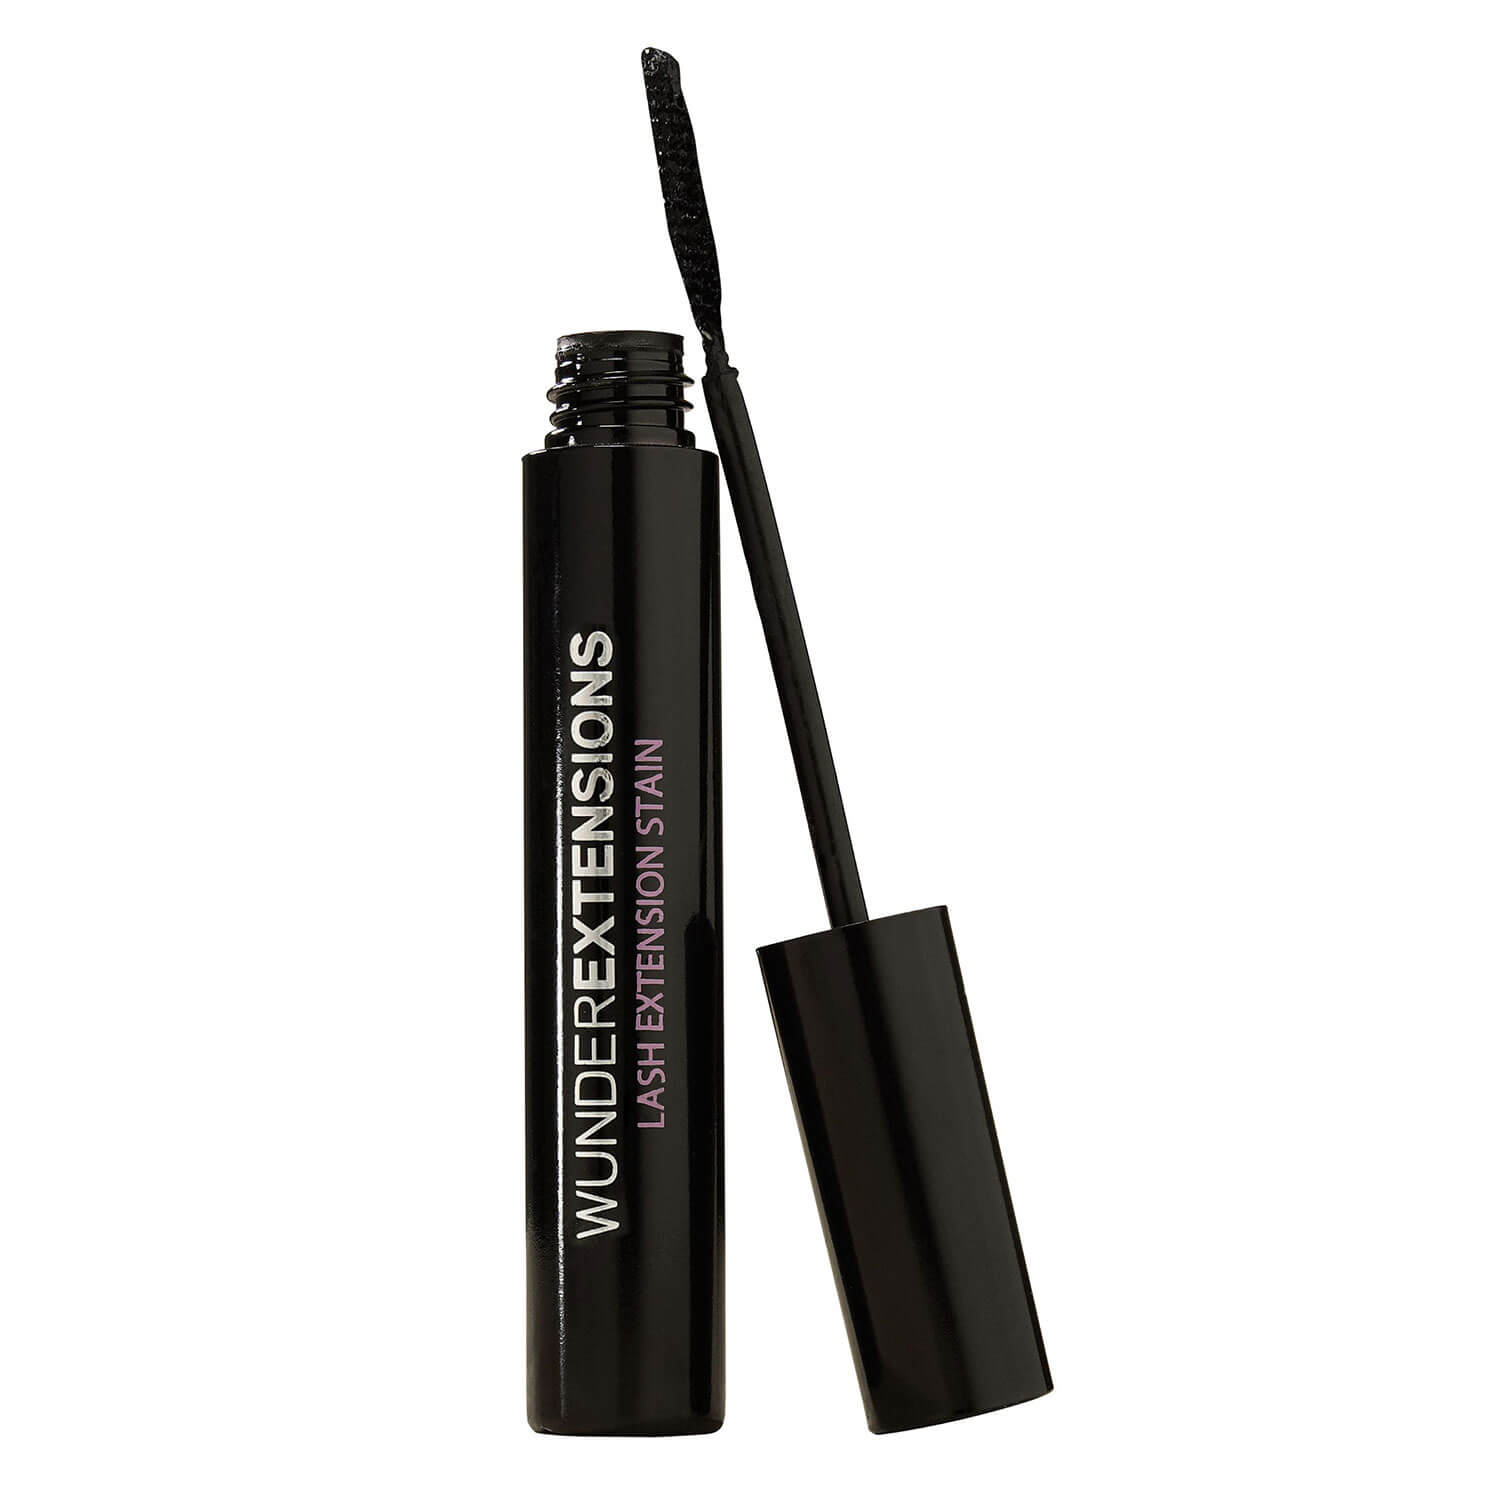 WUNDEREXTENSIONS - Lash Extension Stain Mascara Black